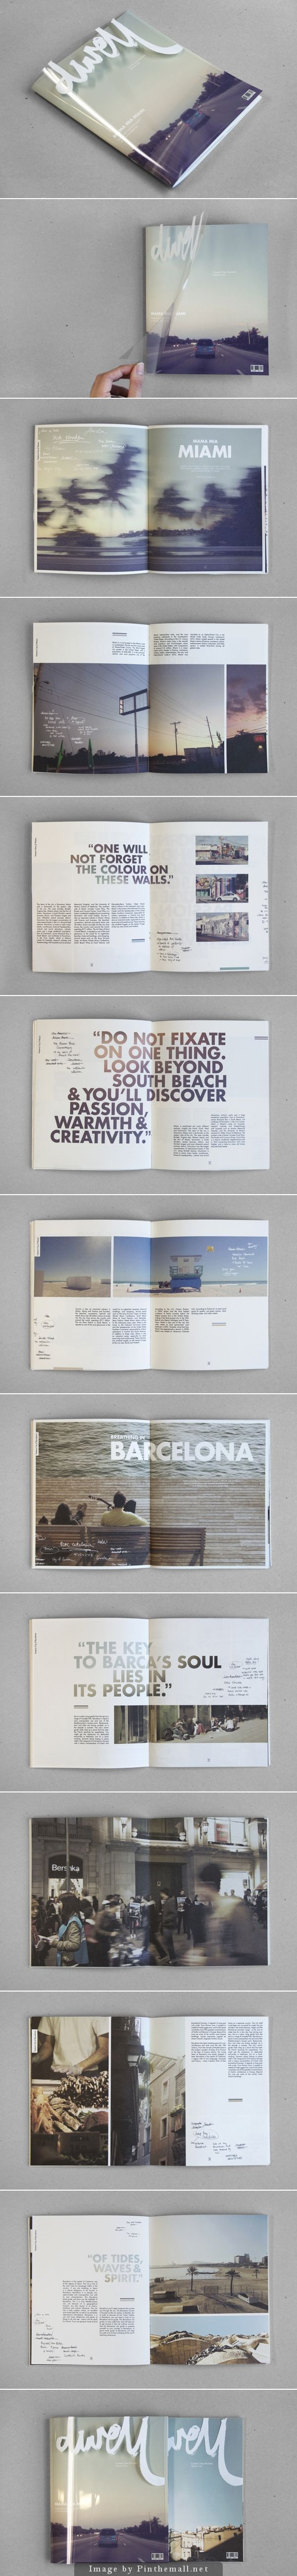 Graphic design for 'Dwell - Coastal Cities Revisited' by Sidney Lim YX